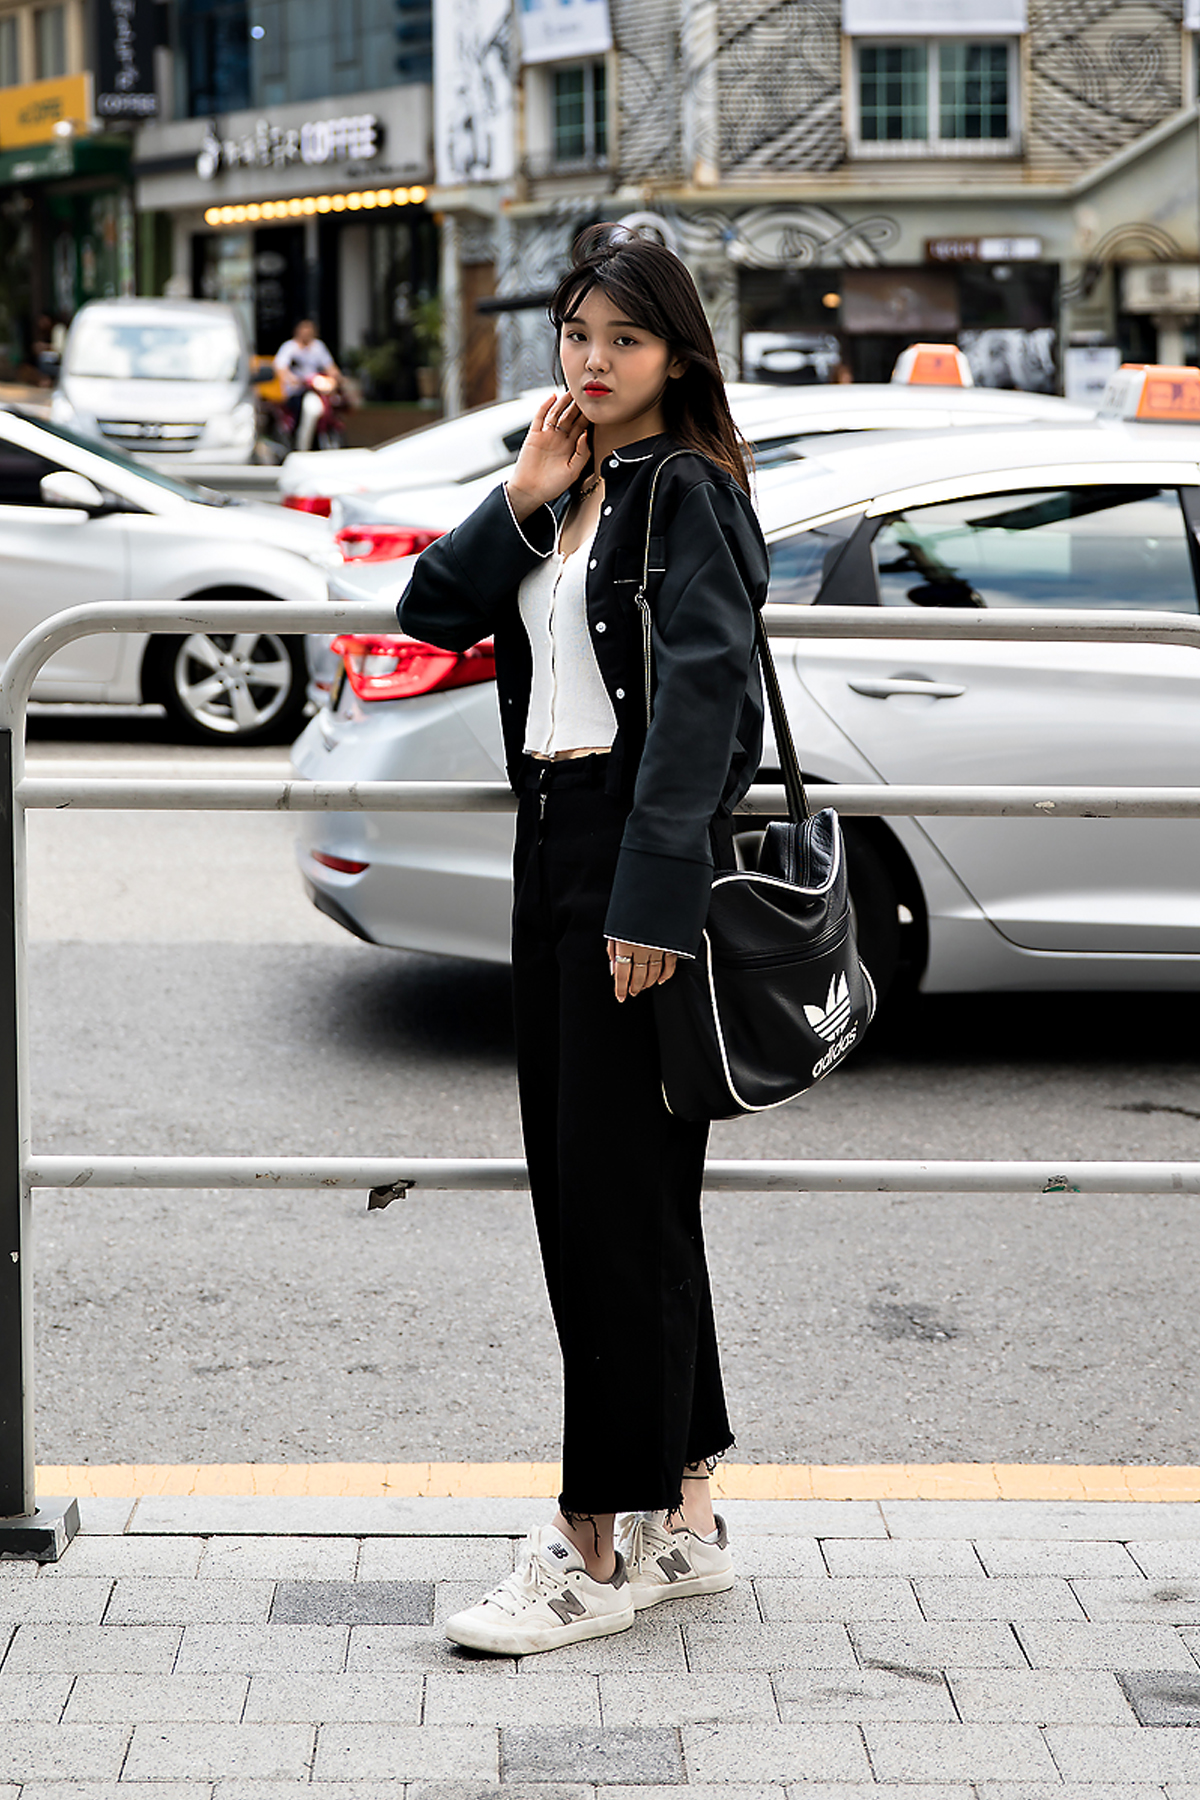 Kim Juyeon, Street Fashion 2017 in Seoul.jpg